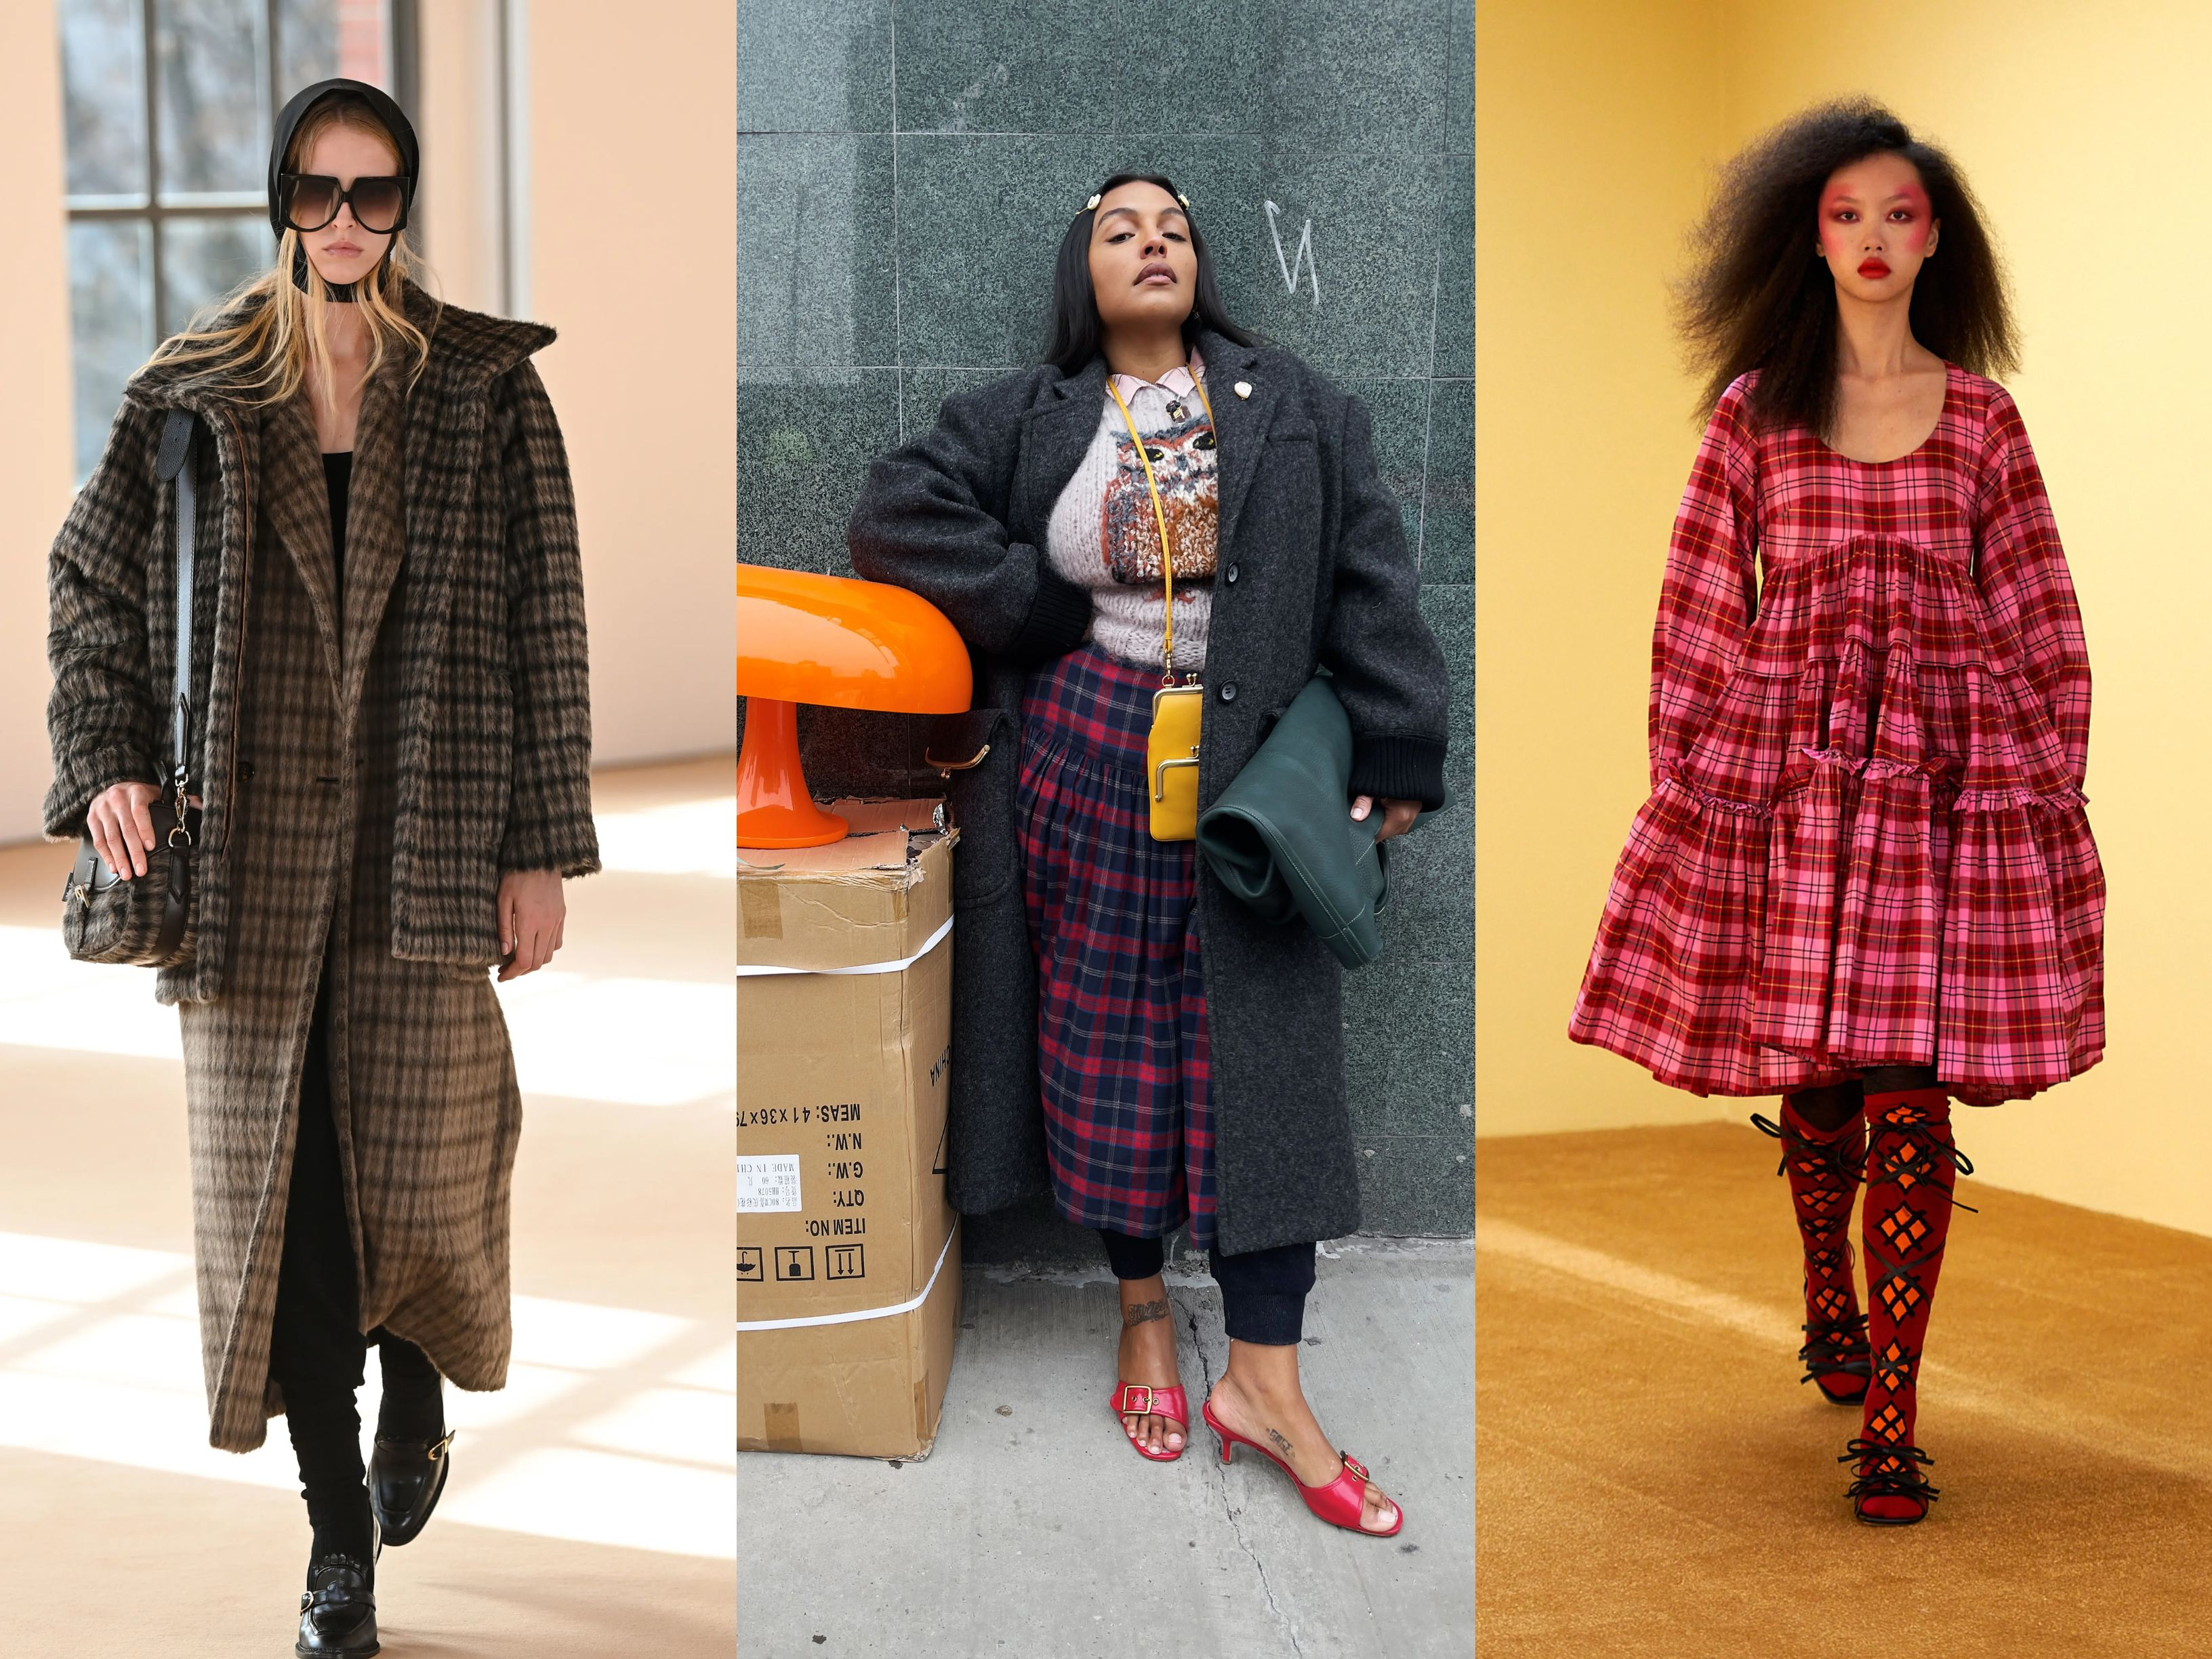 Models wearing AW21 trends Plaid